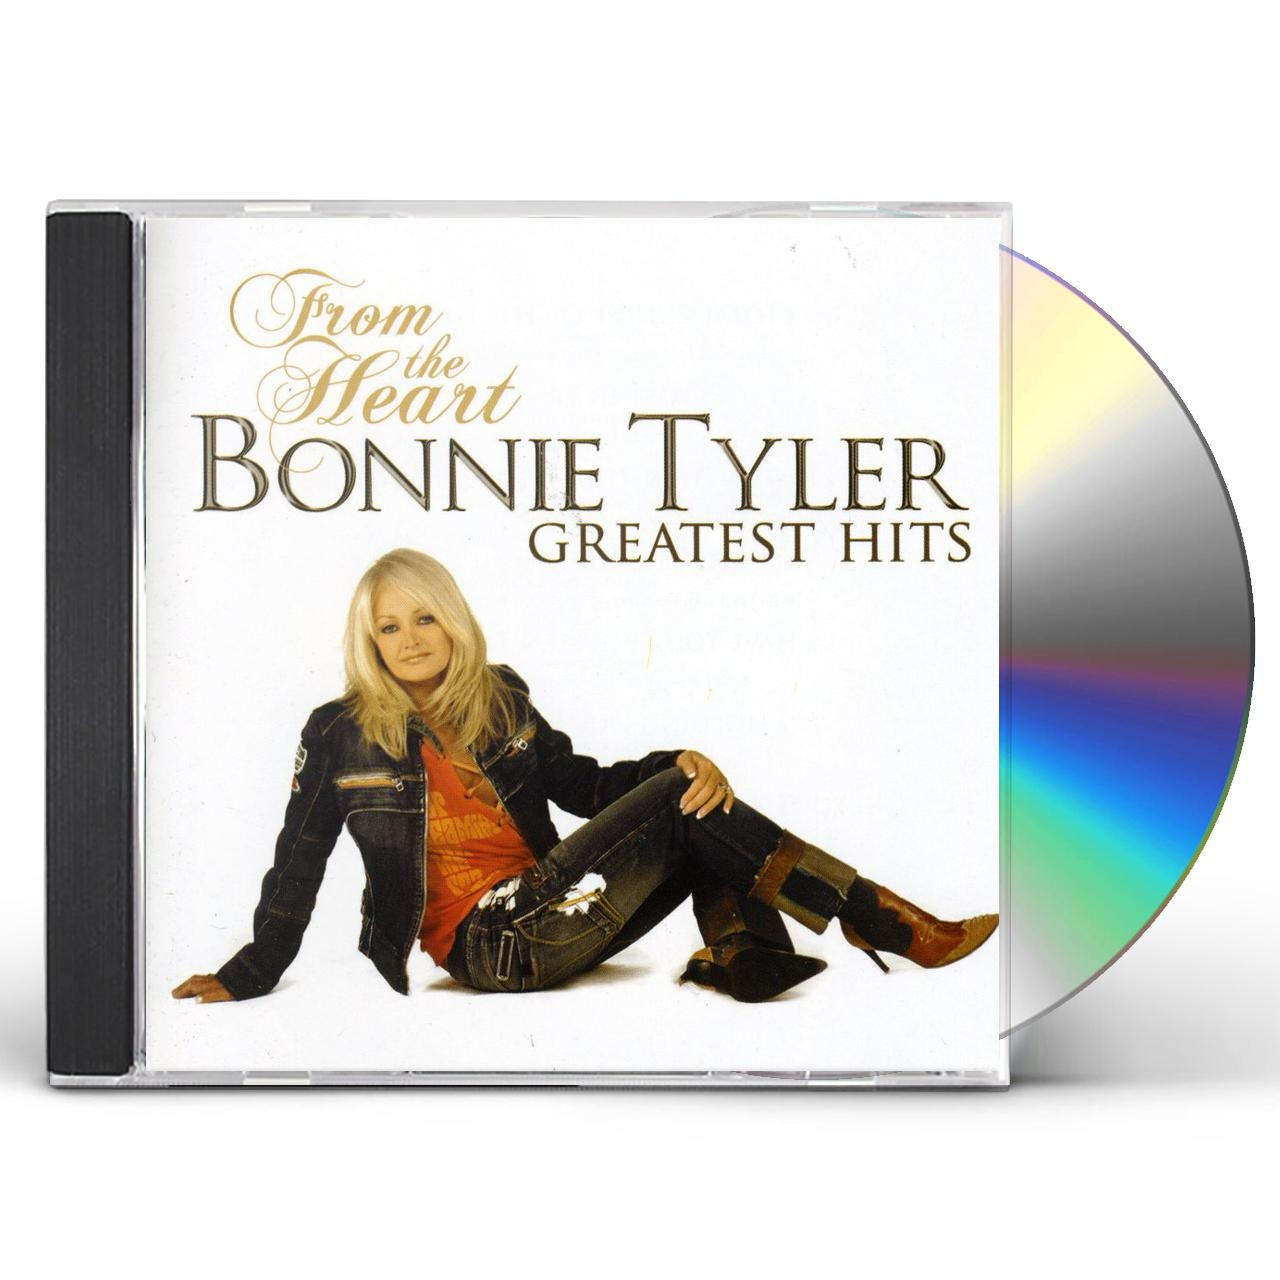 Bonnie Tyler FROM THE HEART: GREATEST HITS CD